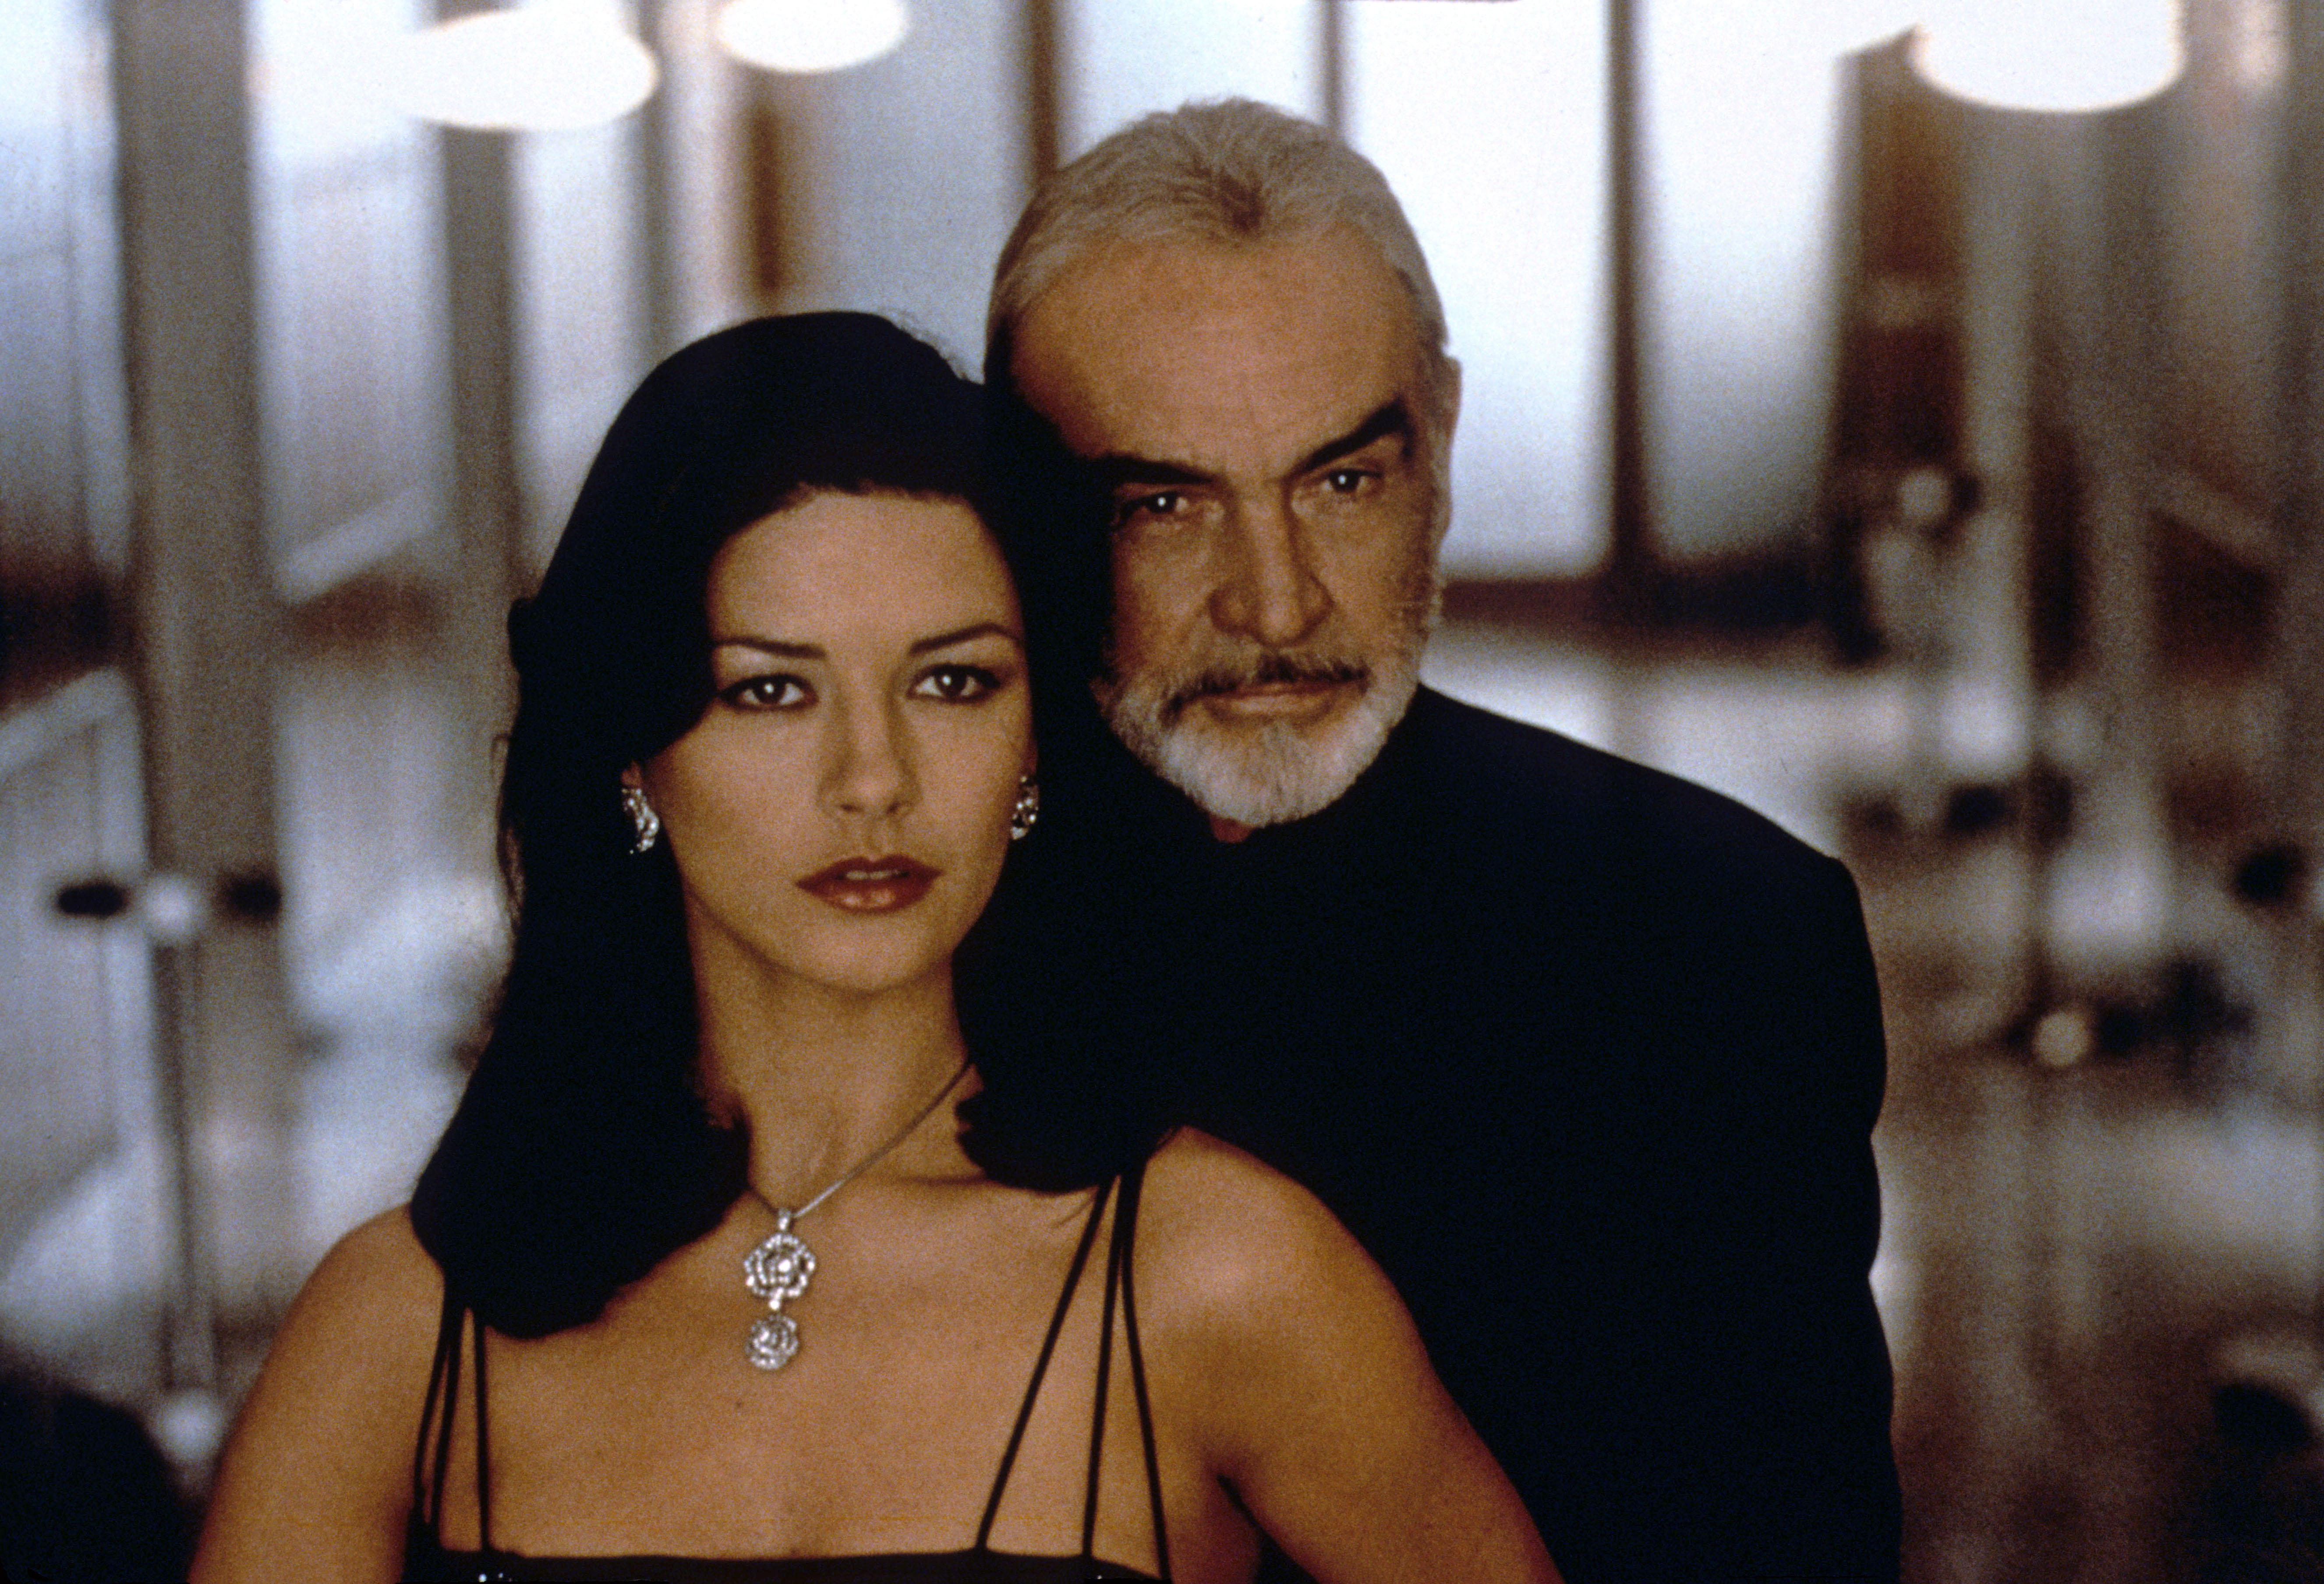 ENTRAPMENT, Catherine Zeta-Jones, Sean Connery, 1999, TM and Copyright © 20th Century Fox Film Corp. All rights reserved,Courtesy: Everett Collection (image upgraded to 17.7 x 12.1 in)